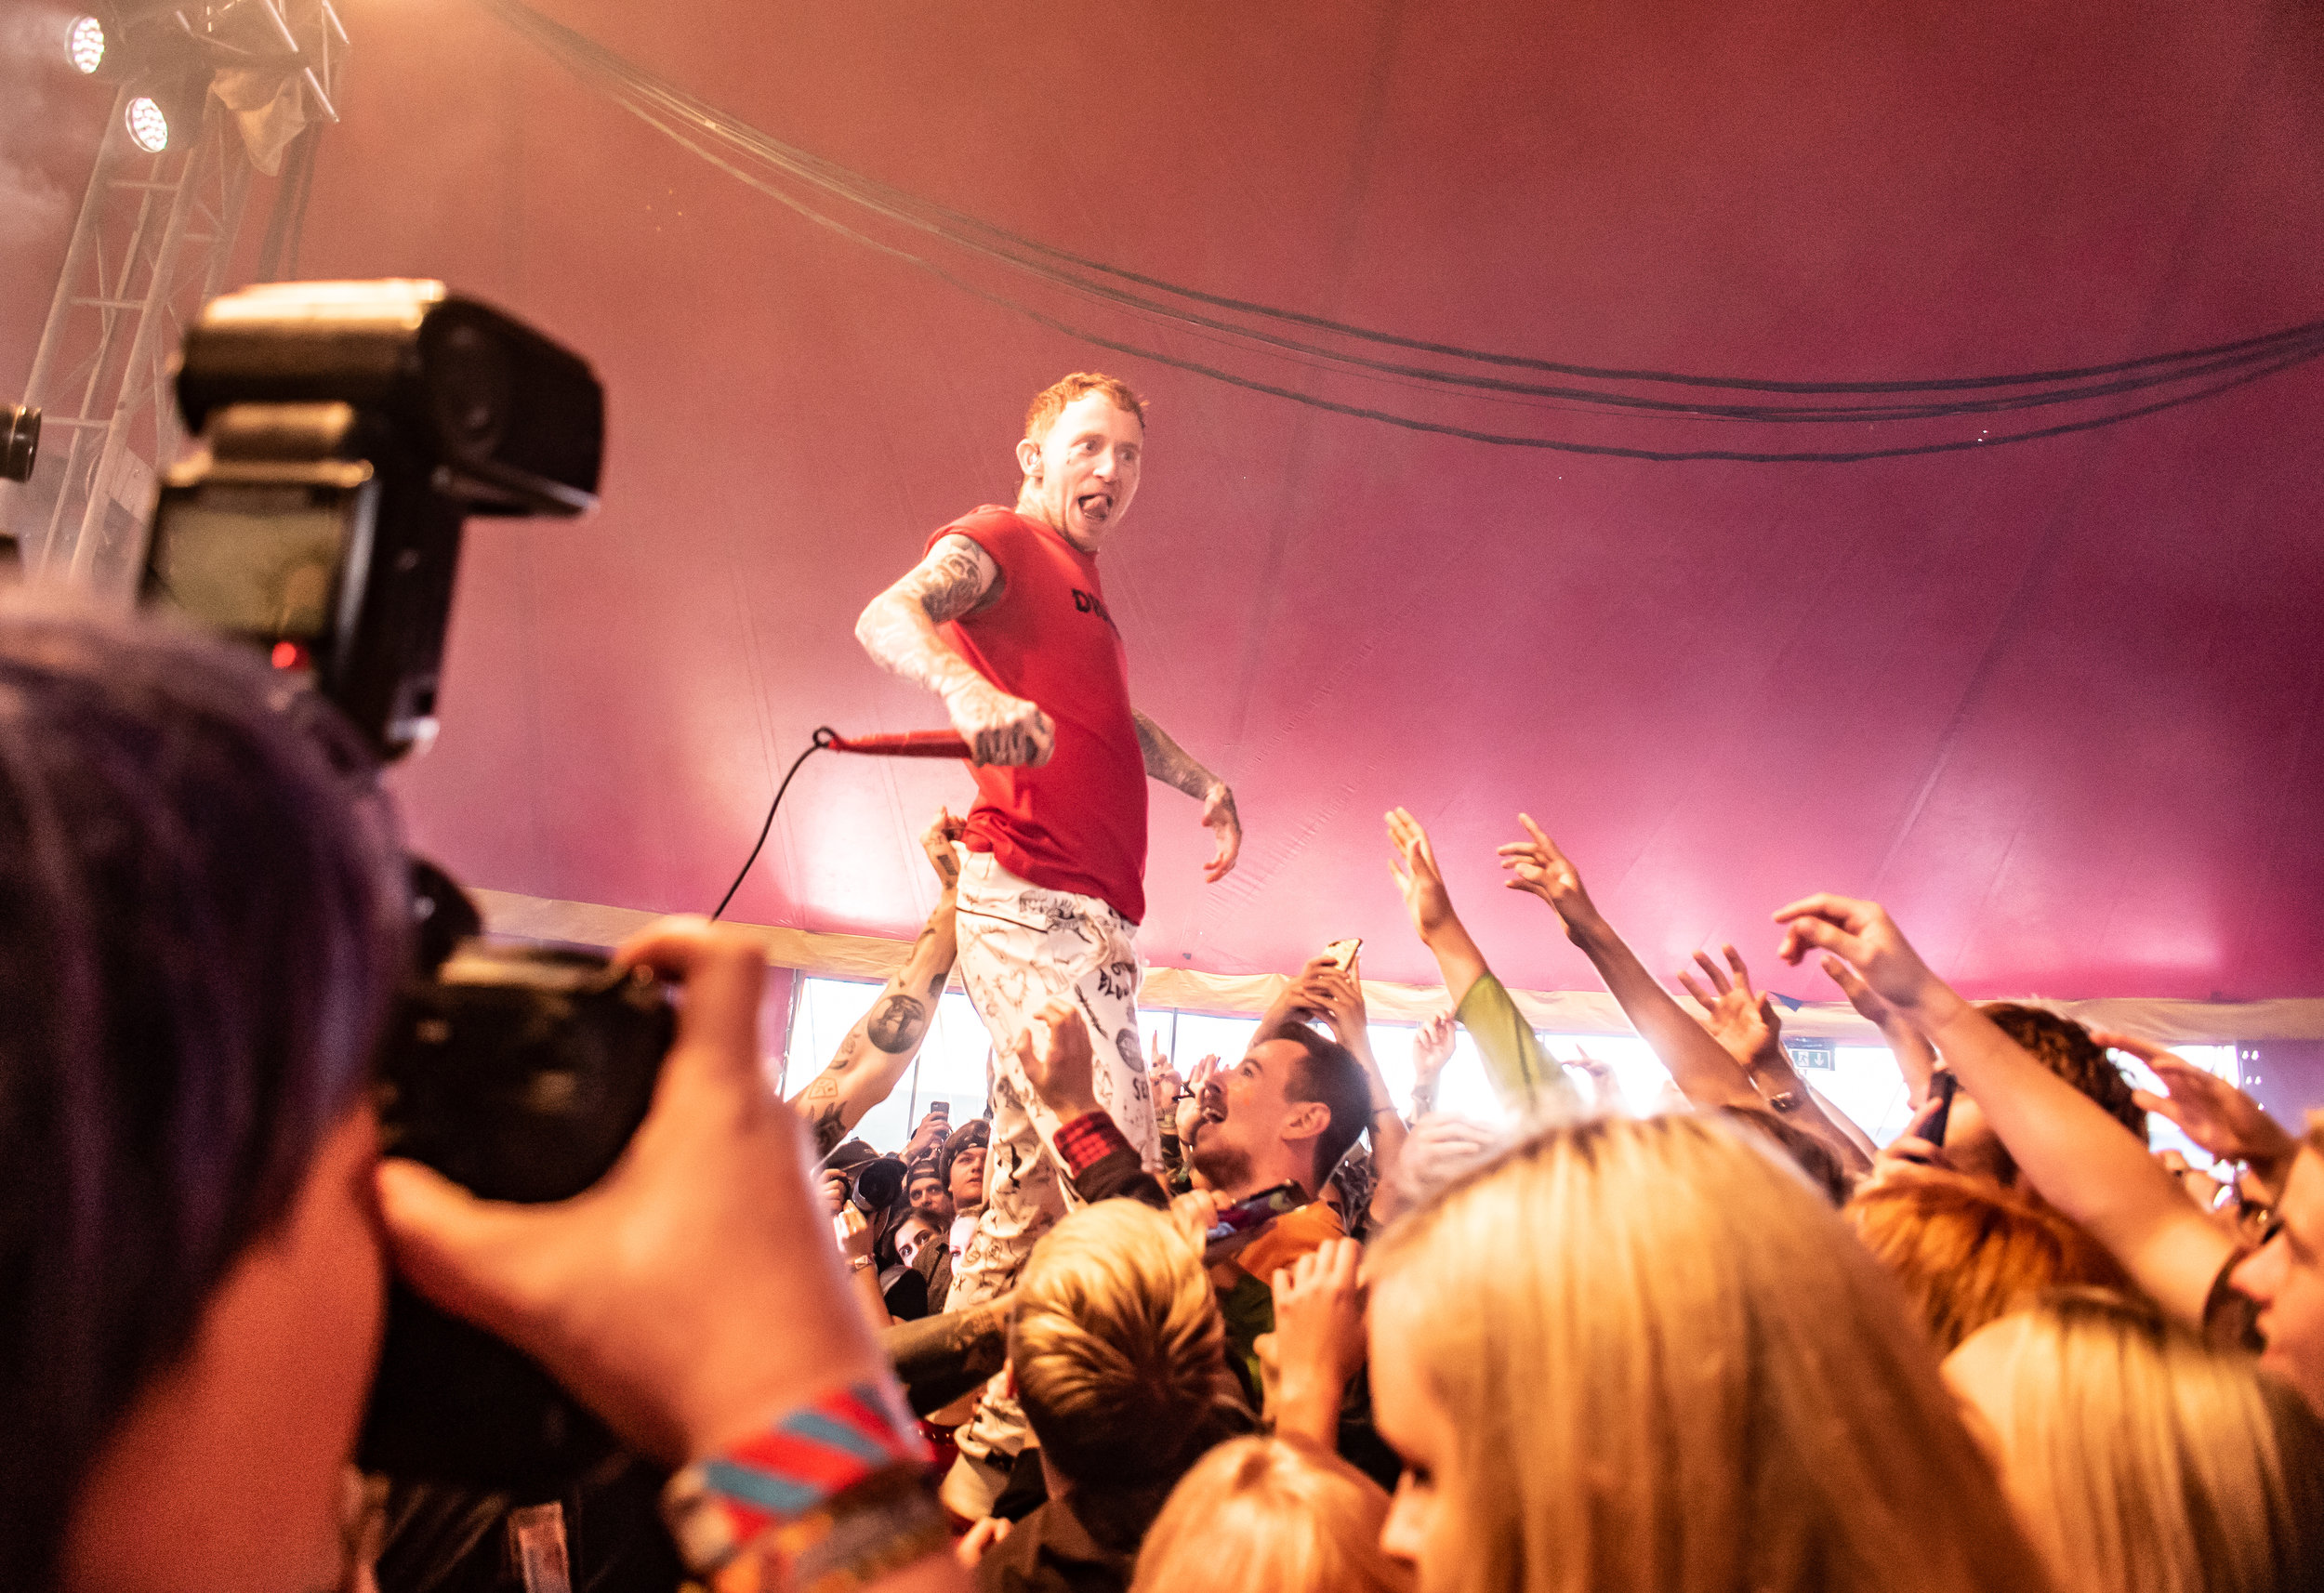 FRANK CARTER & THE RATTLESNAKES PERFORMING AT THE PIT TENT AS THIS YEAR'S SECRET SET AT LEEDS FESTIVAL 2018 - 24.08.2018  PICTURE BY: CALUM BUCHAN PHOTOGRAPHY